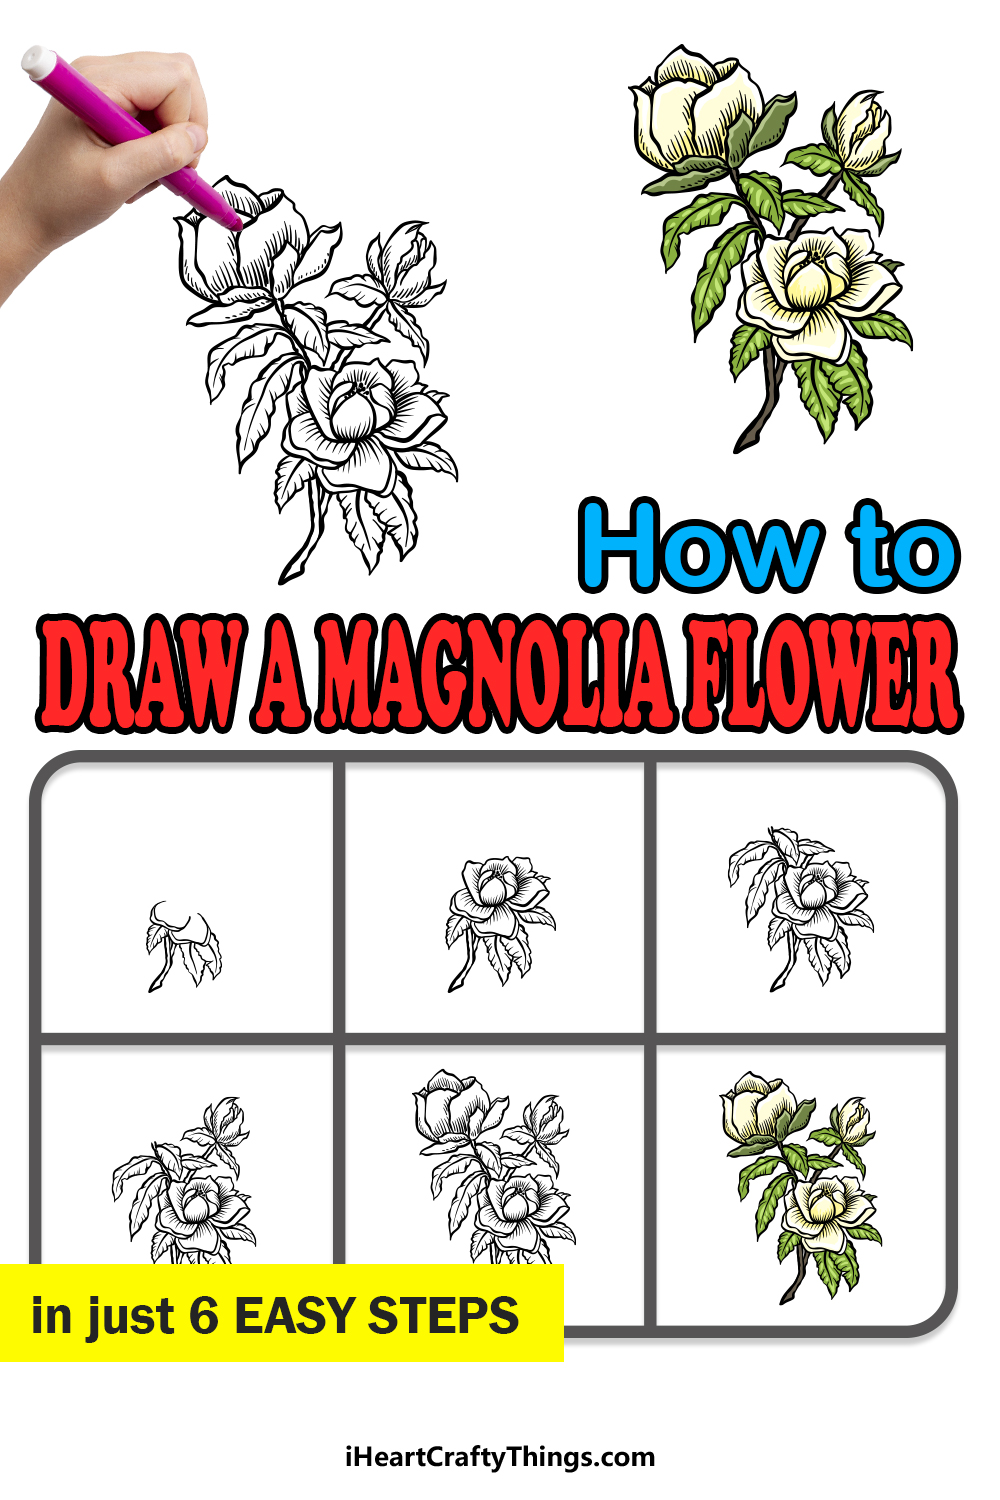 how to draw magnolia flower in 6 easy steps